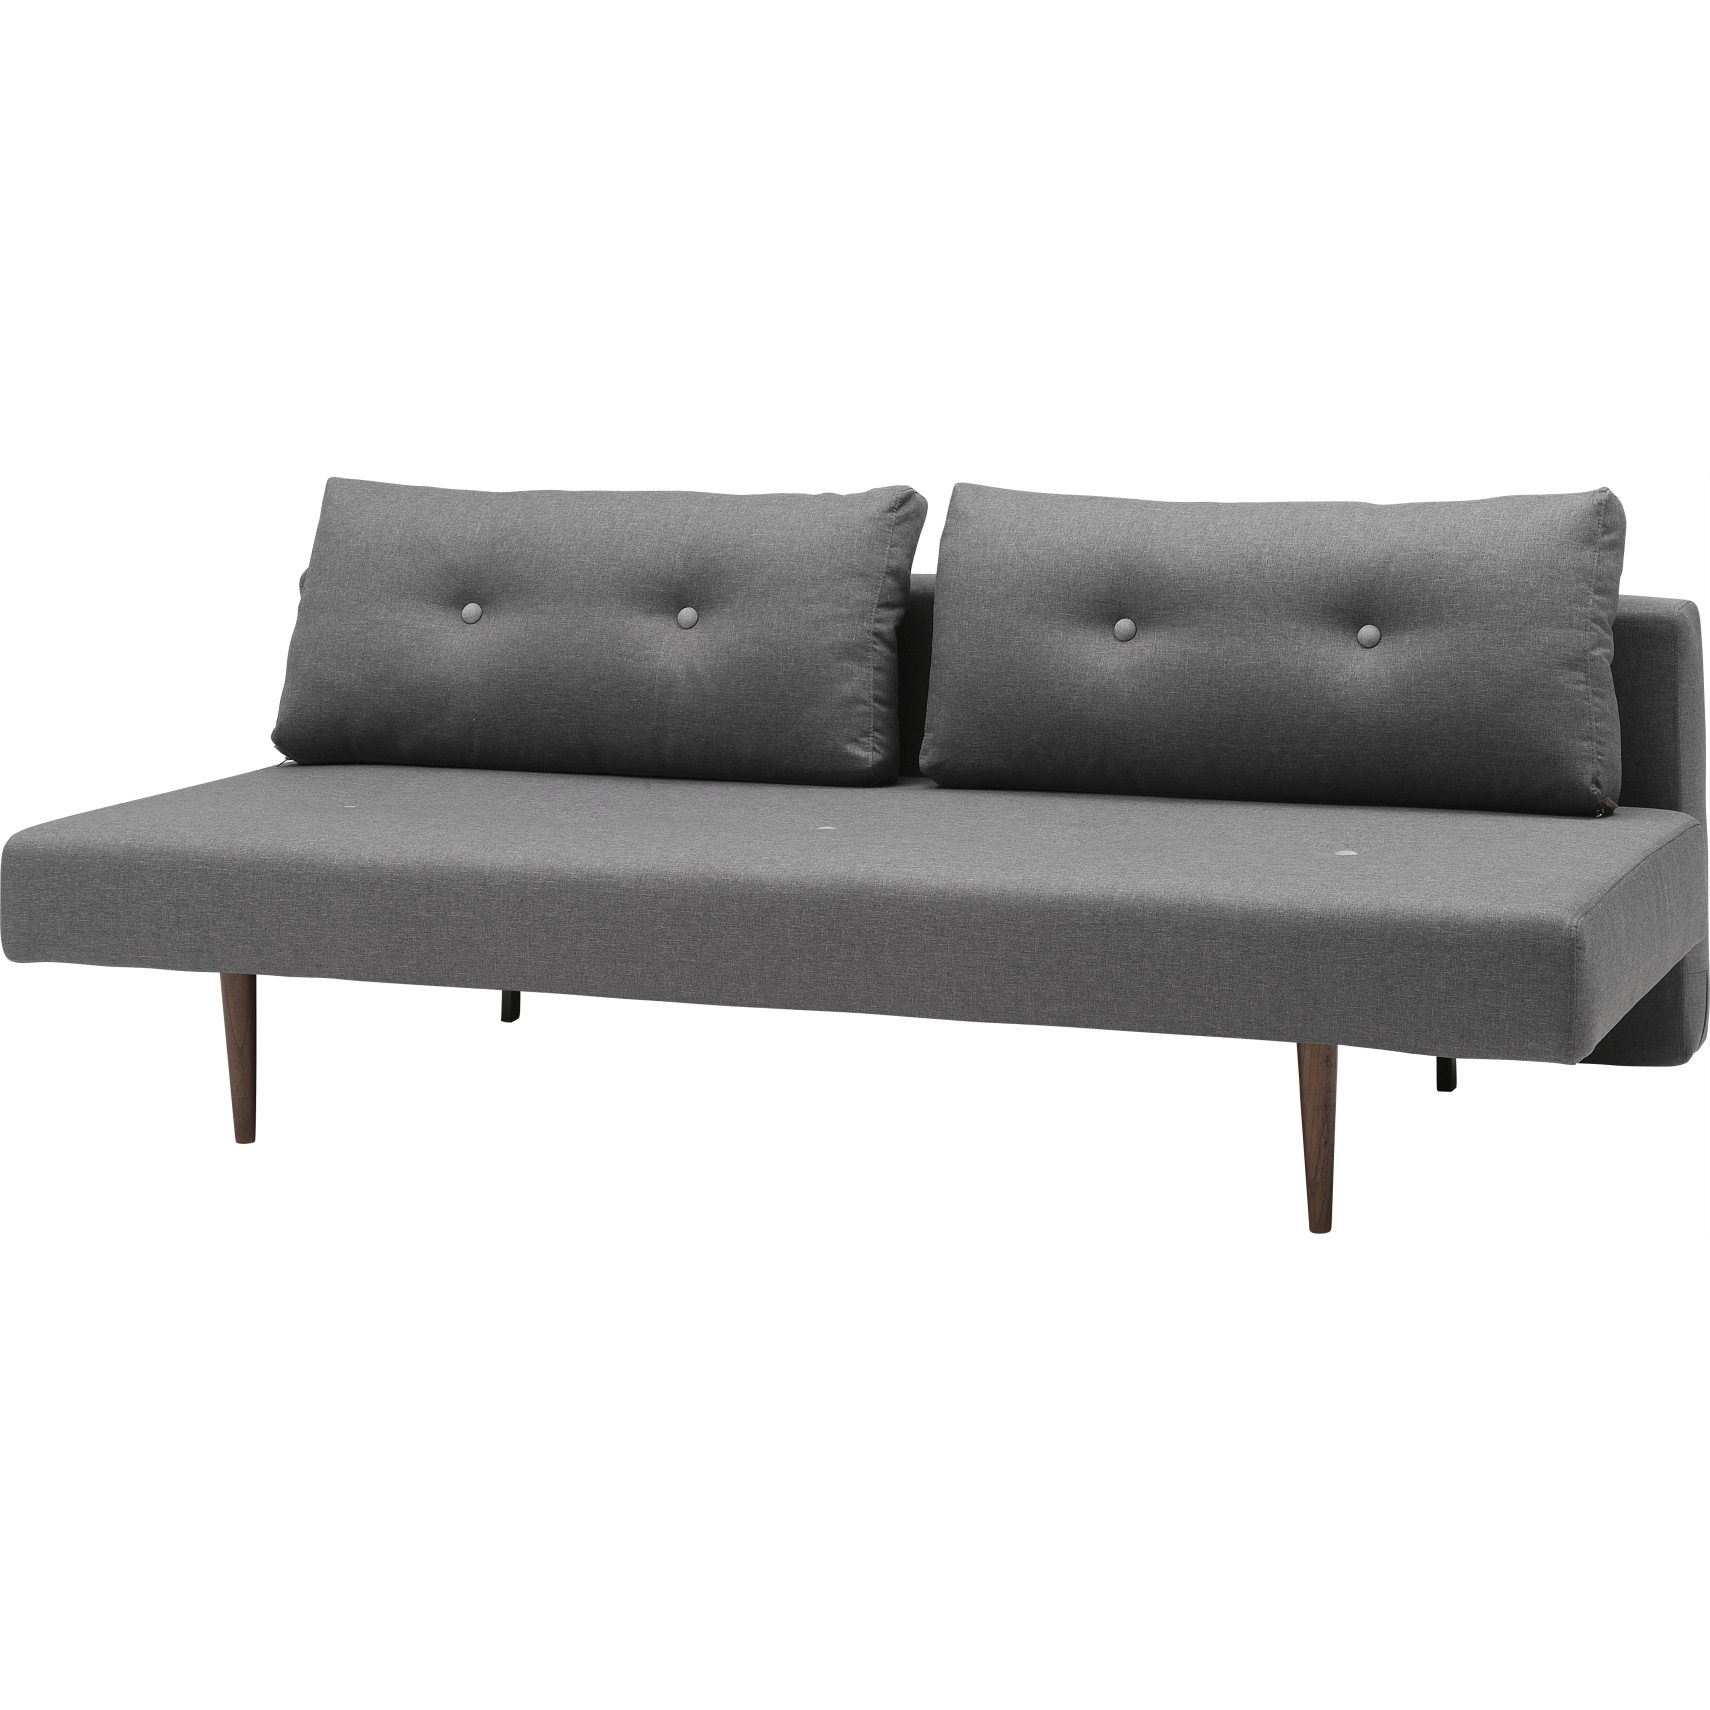 Innovation Living - Recast Plus Bäddsoffa - Flashtex 216 Dark Grey och mörkt trä